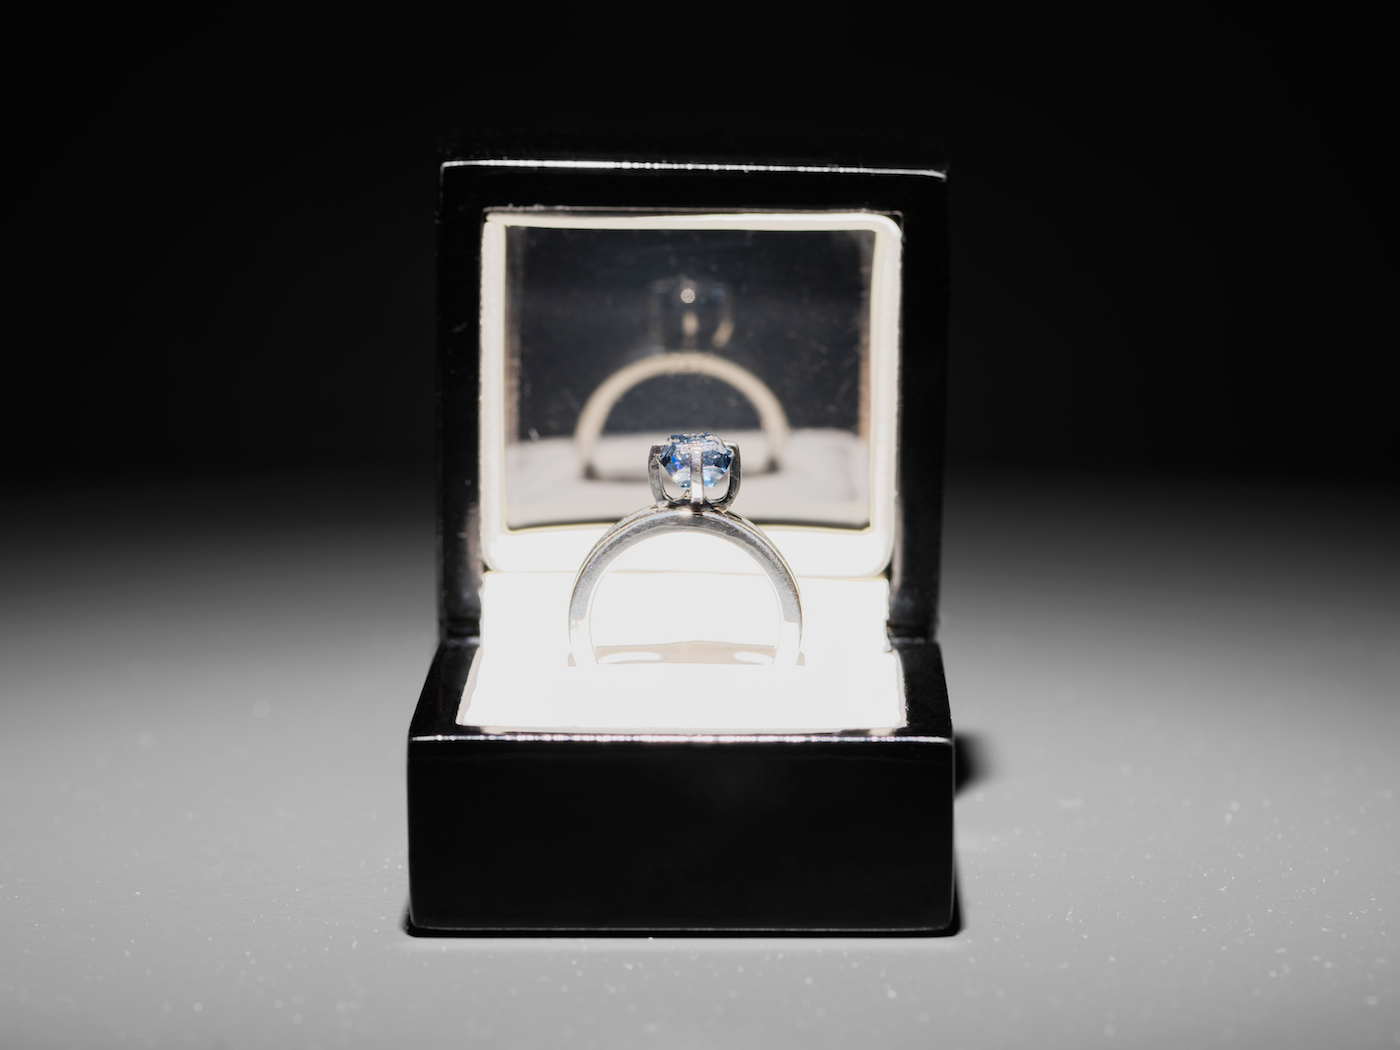 """Jill Magid, """"The Proposal"""" (2016, detail), uncut, 2.02 carat, blue diamond with micro-laser inscription """"I am wholeheartedly yours,"""" silver ring, ring box, documents; setting design by Anndra Neen (photo by Stefan Jaeggi, courtesy Kunst Halle Sankt Gallen)"""